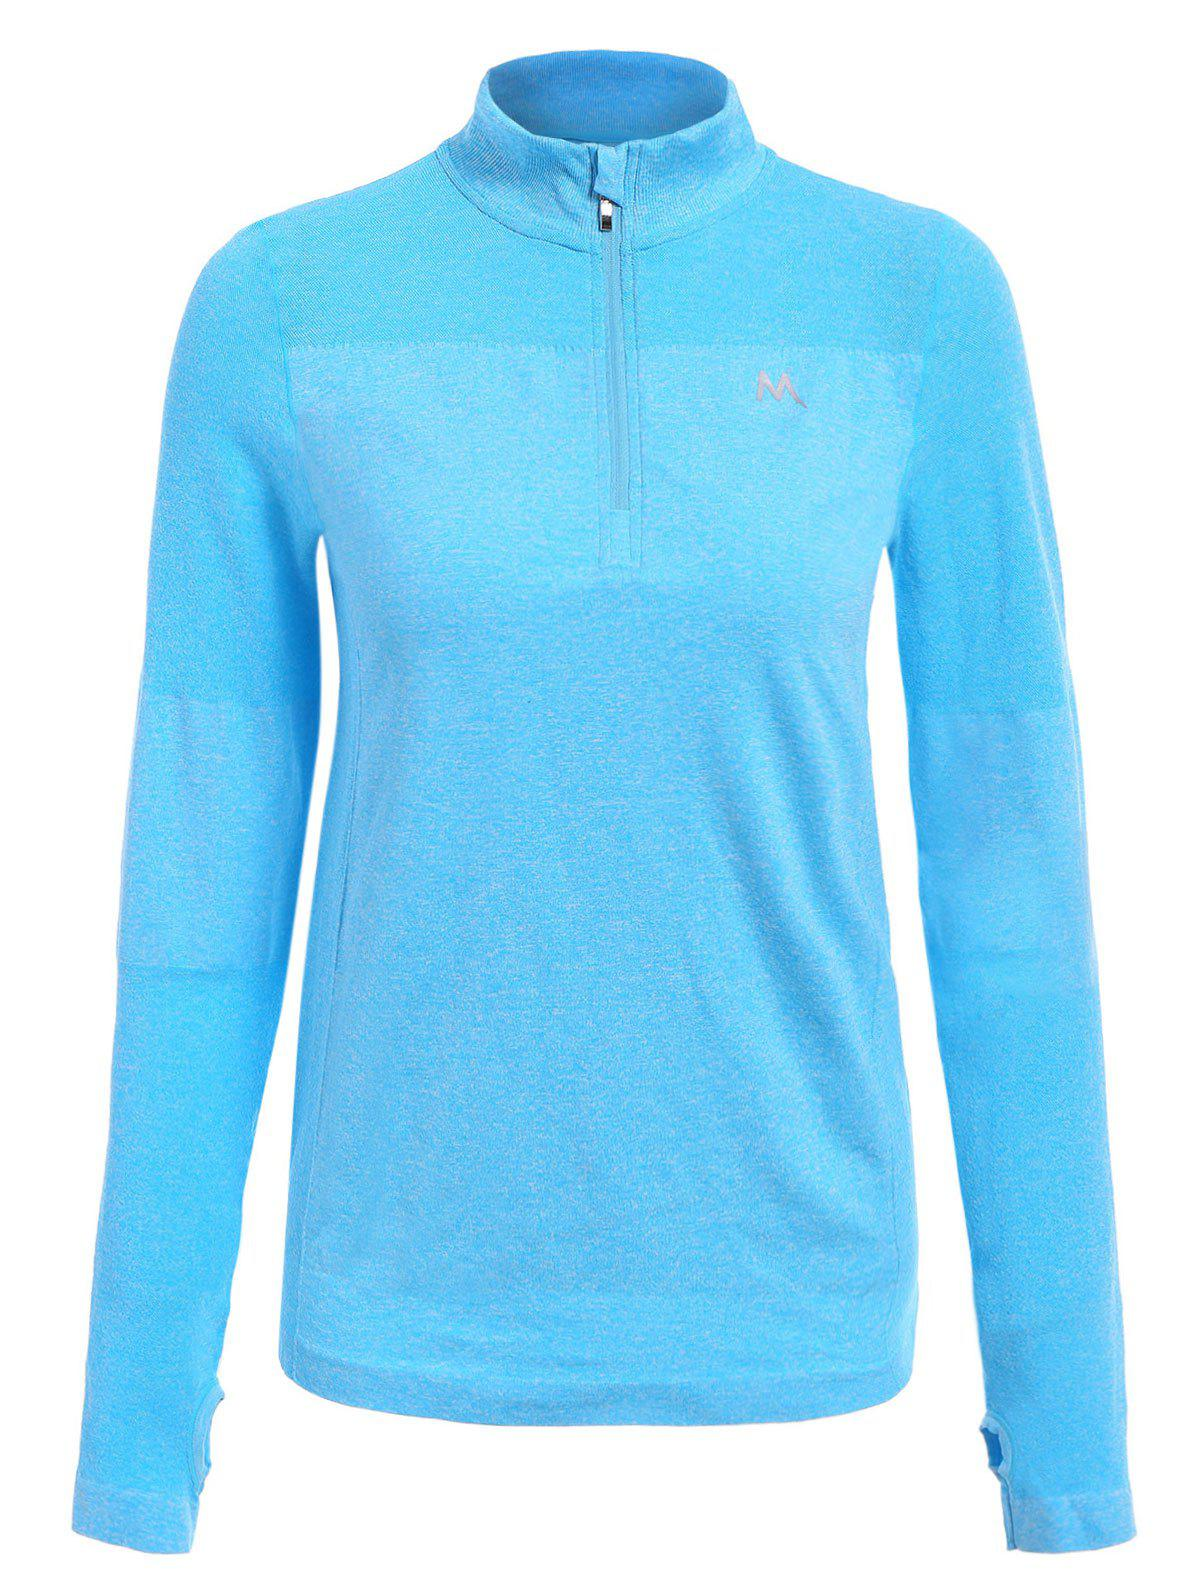 Trendy Long Sleeve Round Neck Sport T-Shirt For Women - BLUE L